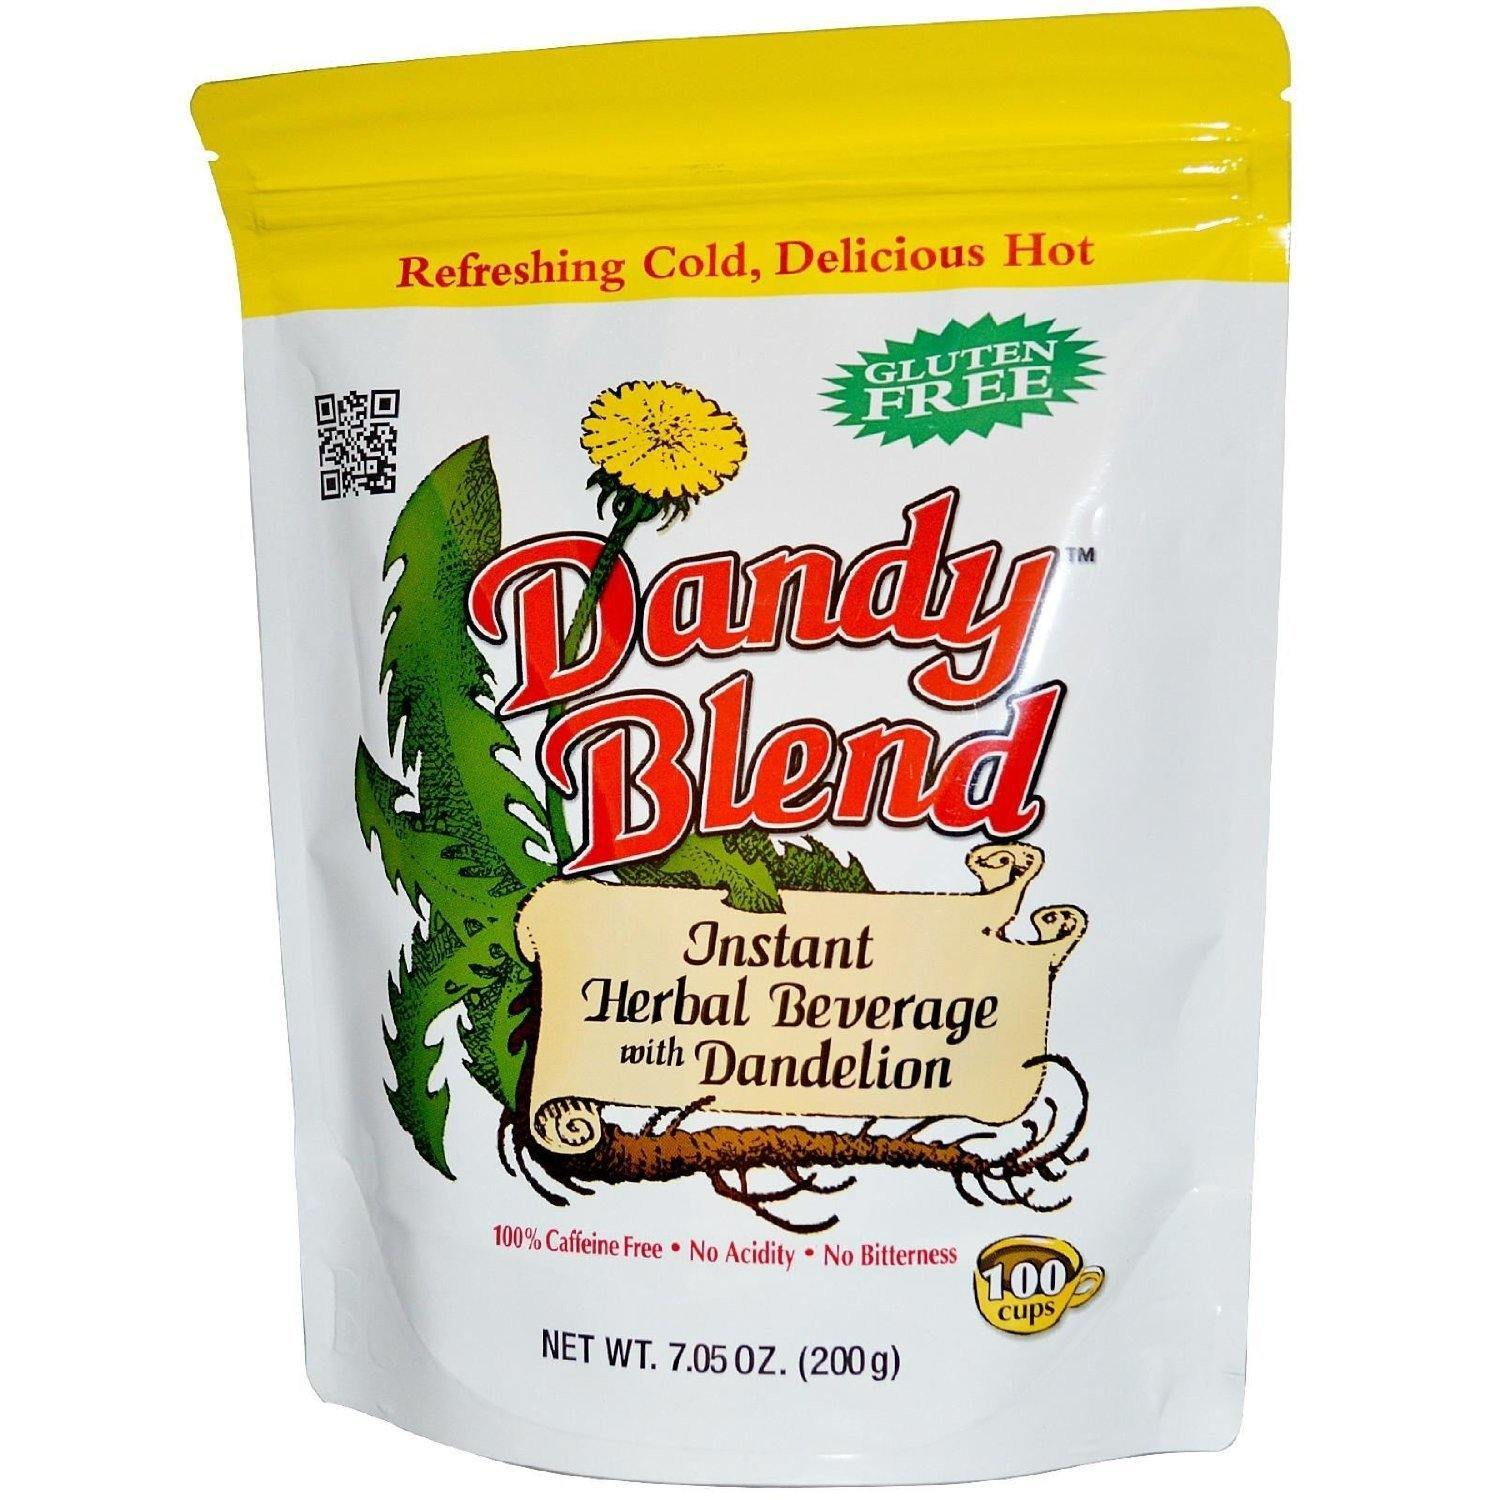 Food & Drink - Dandy Blend - Herbal Beverage, 200g